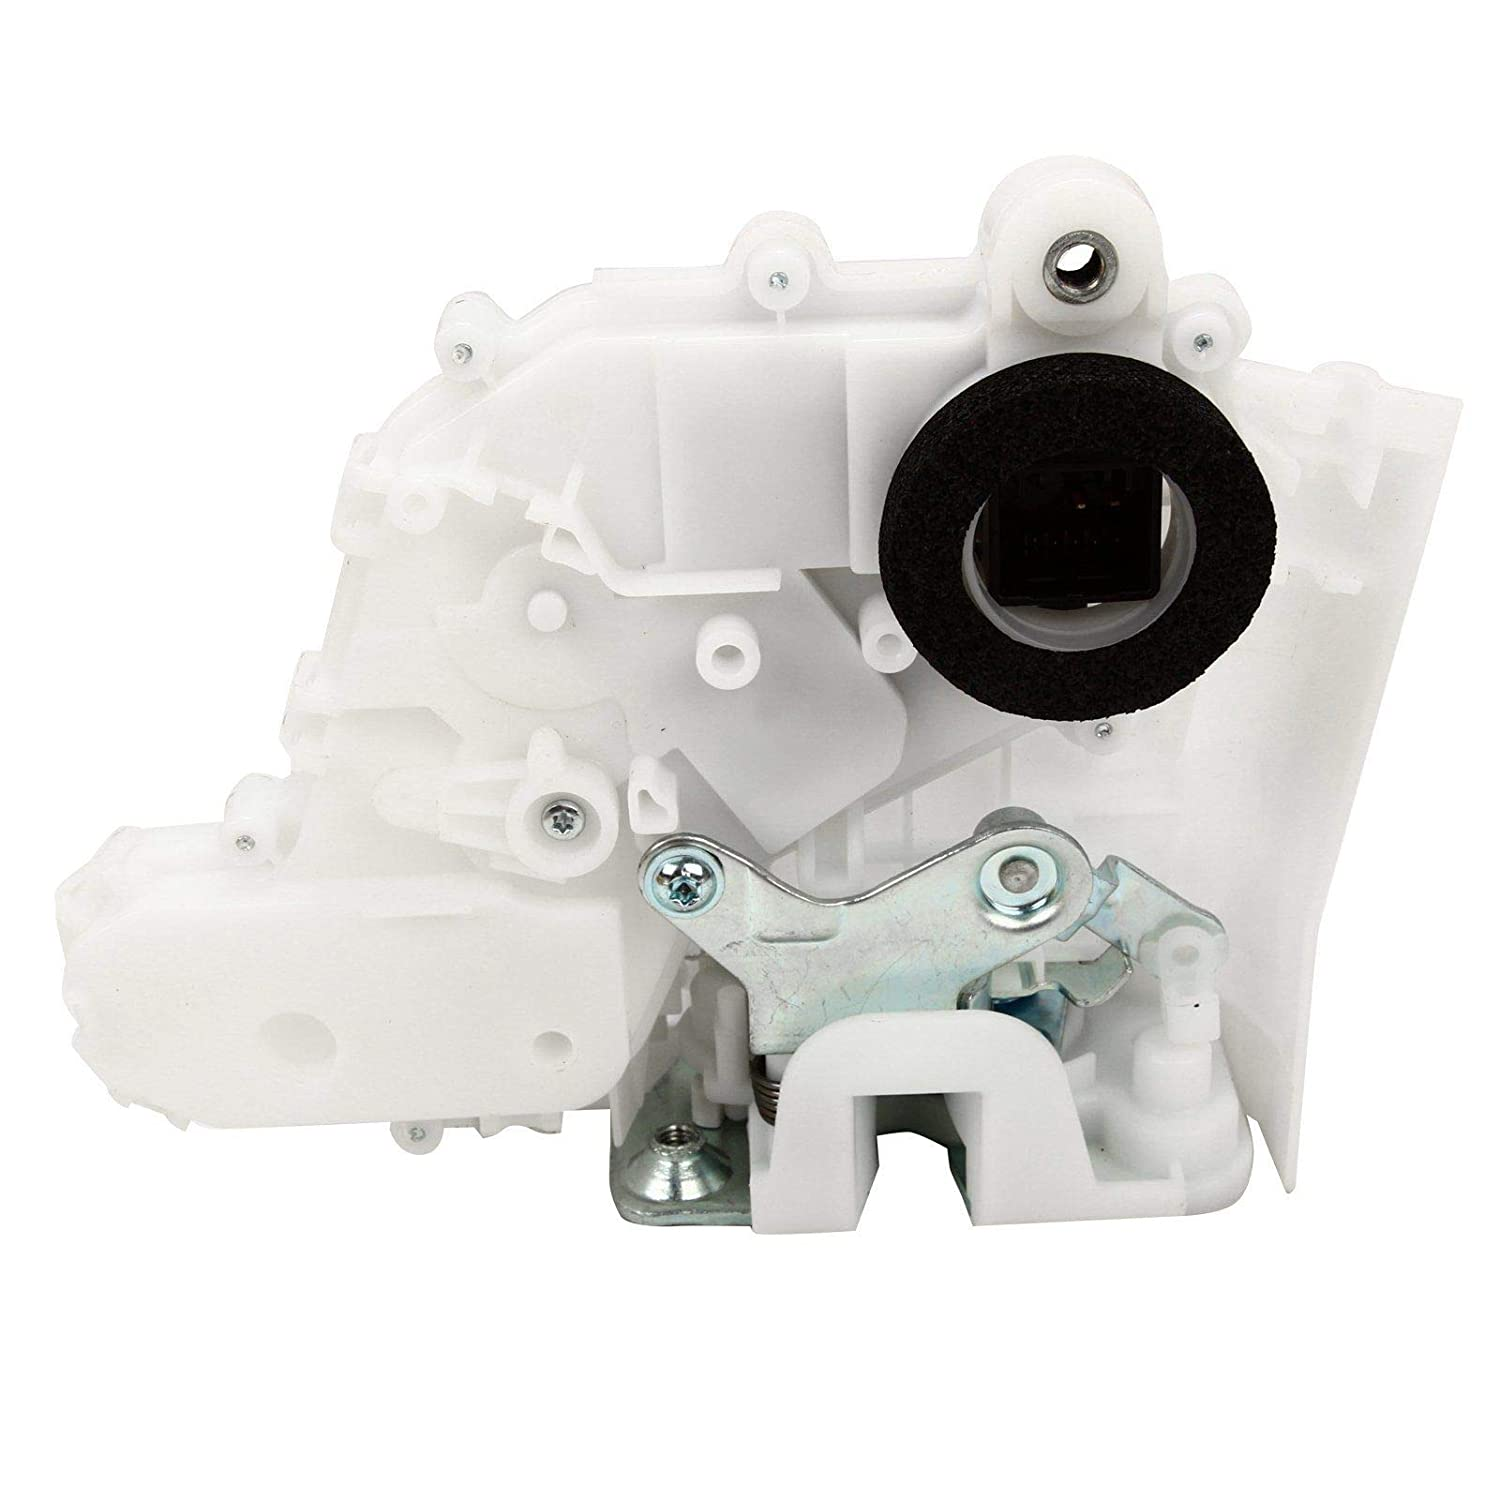 Front Right Passenger Door Lock Latch Actuator Fit for 2007-2011 Honda CRV CR-V 72110-SWA-D01 72110SWAD01 yjracing